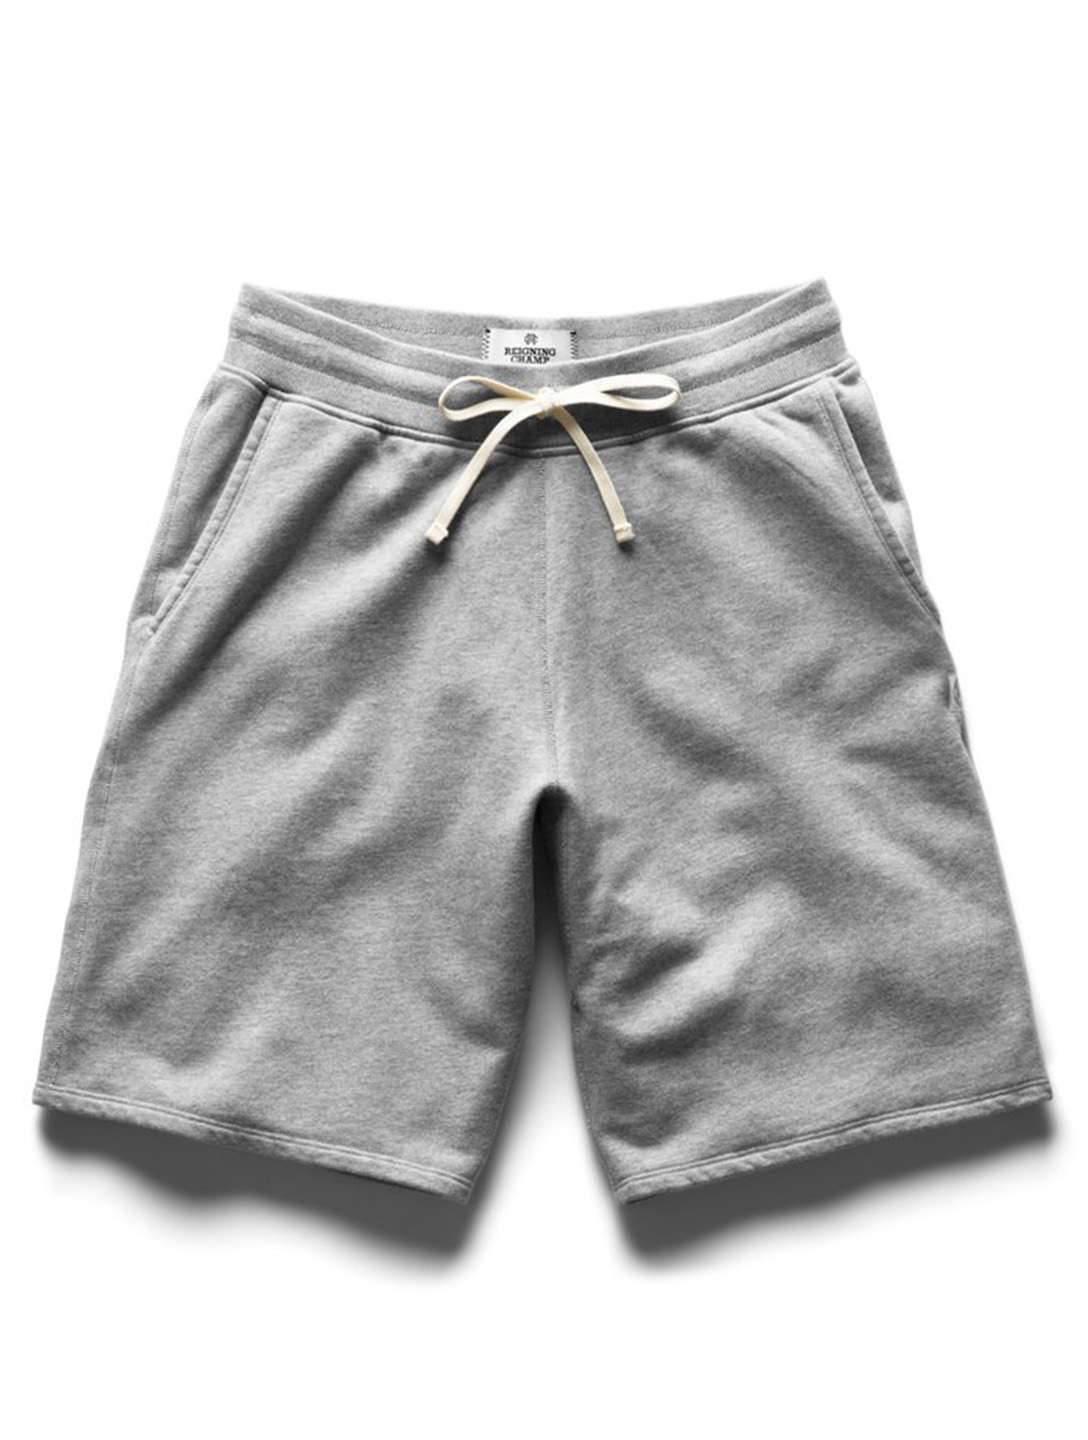 REIGNING CHAMP Terry Cotton Sweatshorts Men's Grey